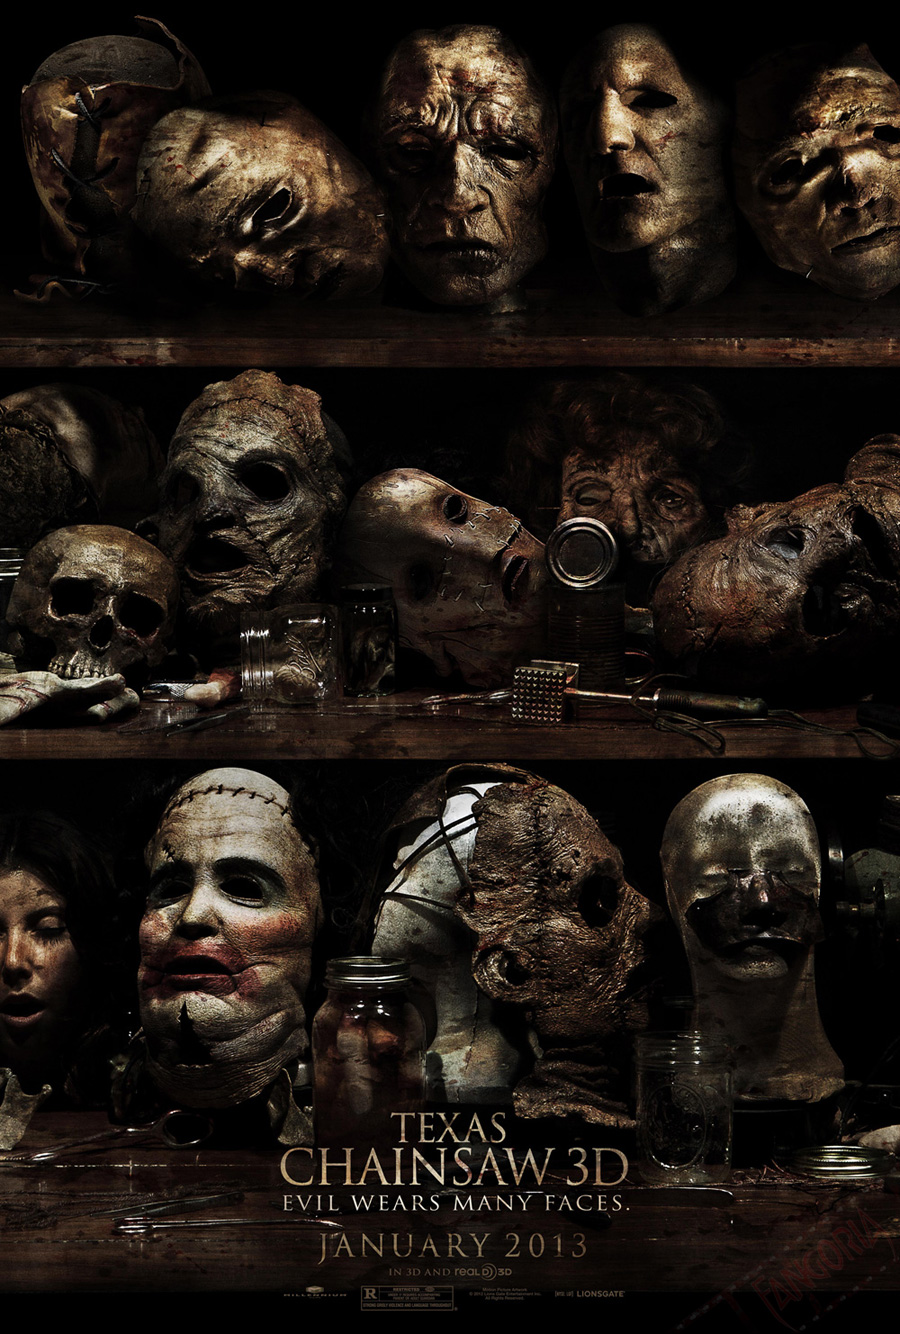 texas chainsaw 3d poster Texas Chainsaw 3D to Get Sequel?